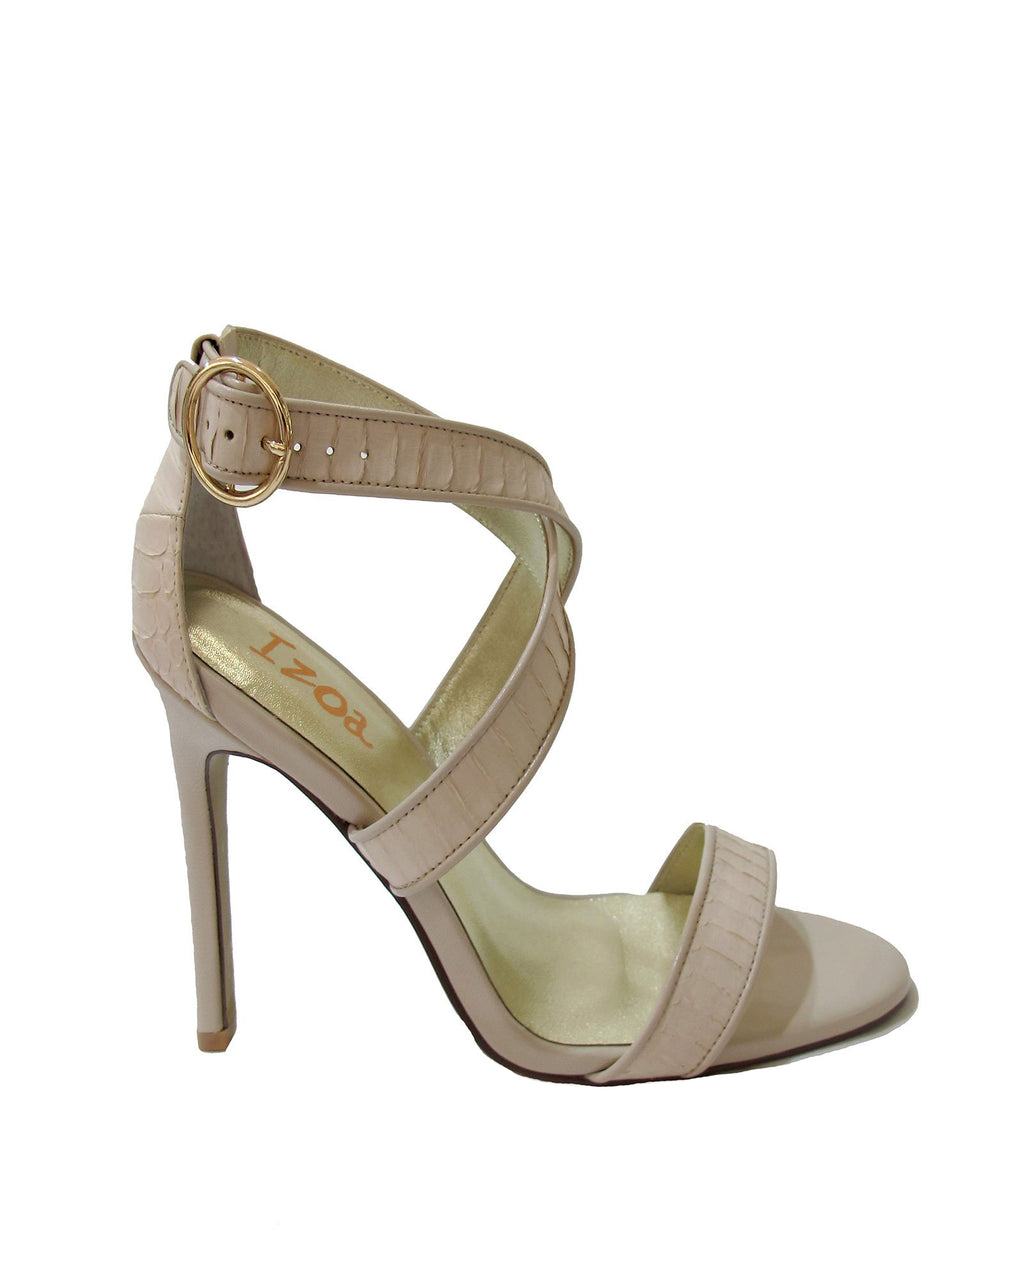 Izoa Spain Heels Nude (SIZE 40 ONLY)